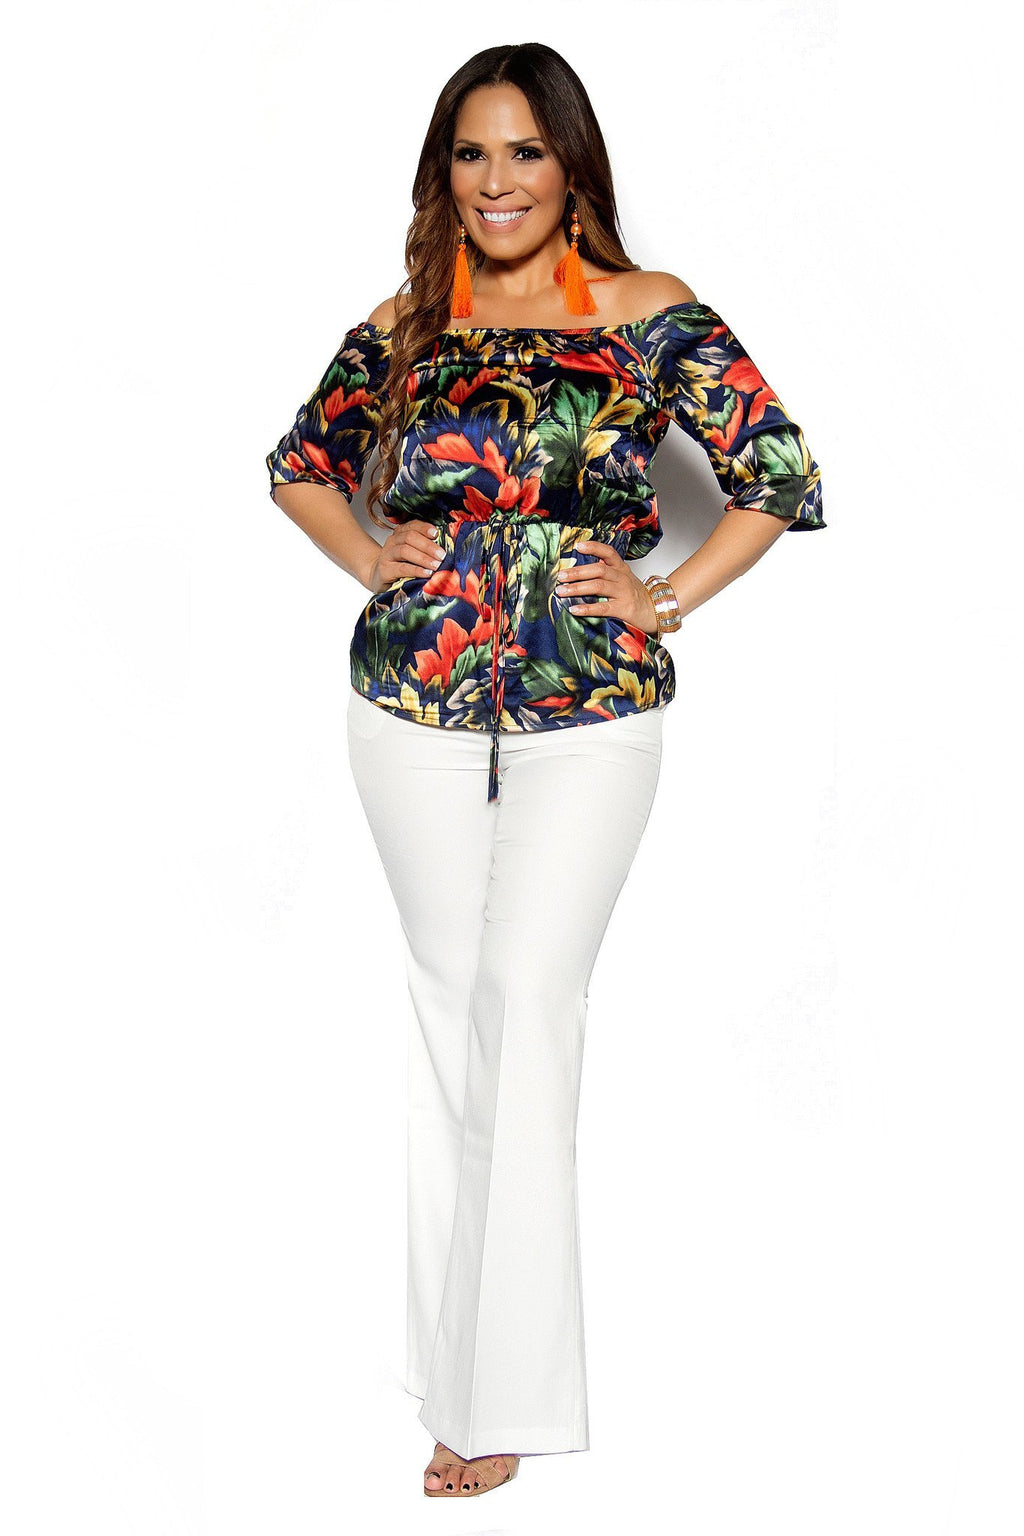 Orange Navy Floral Print Quarter Sleeve Off Shoulder Crop Top - MY SEXY STYLES